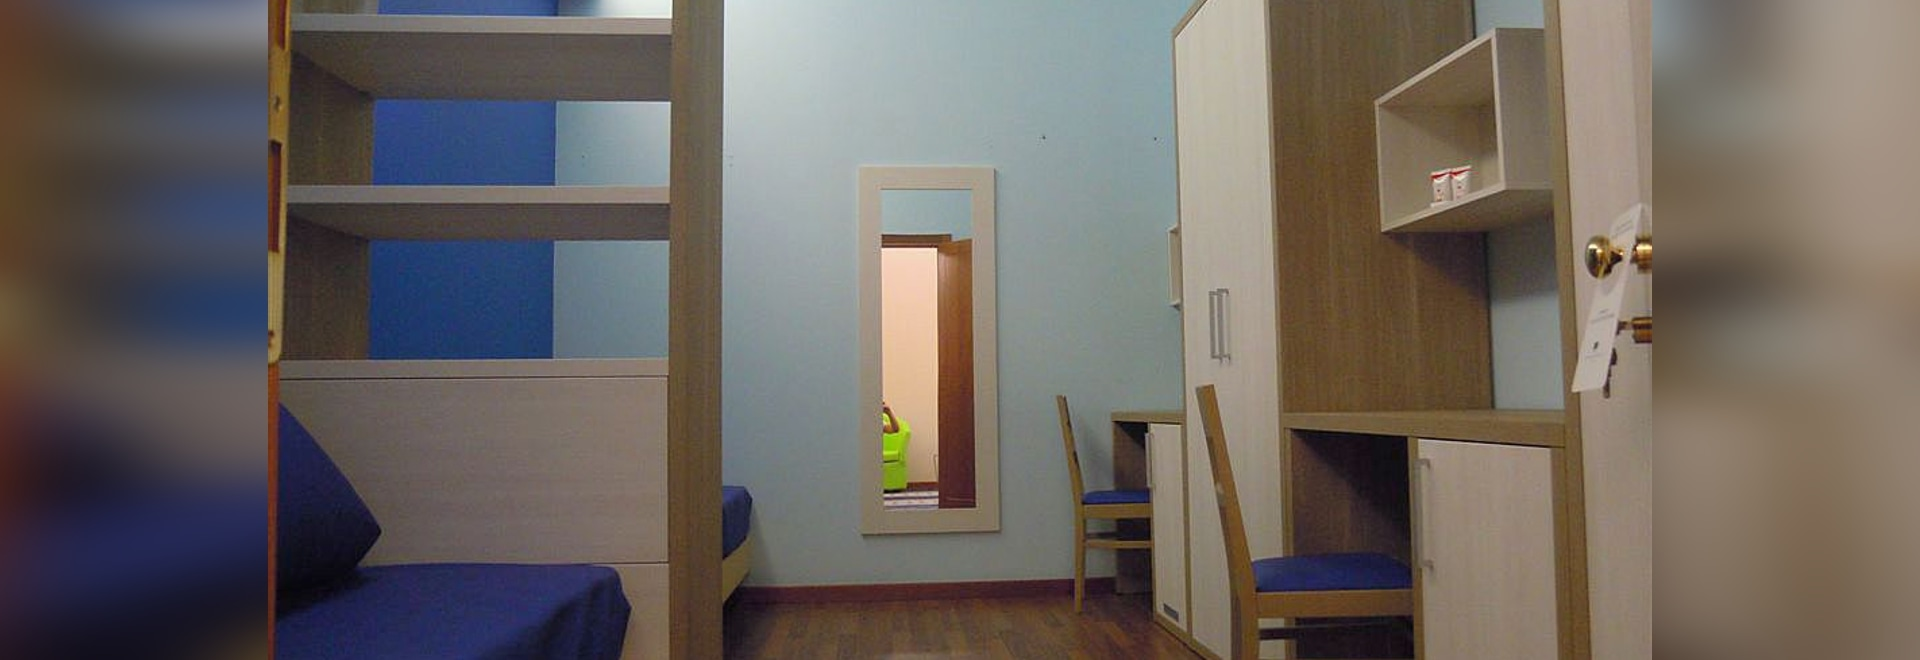 ROOMS FOR STUDENTS AND YOUNG PEOPLE INSIDE